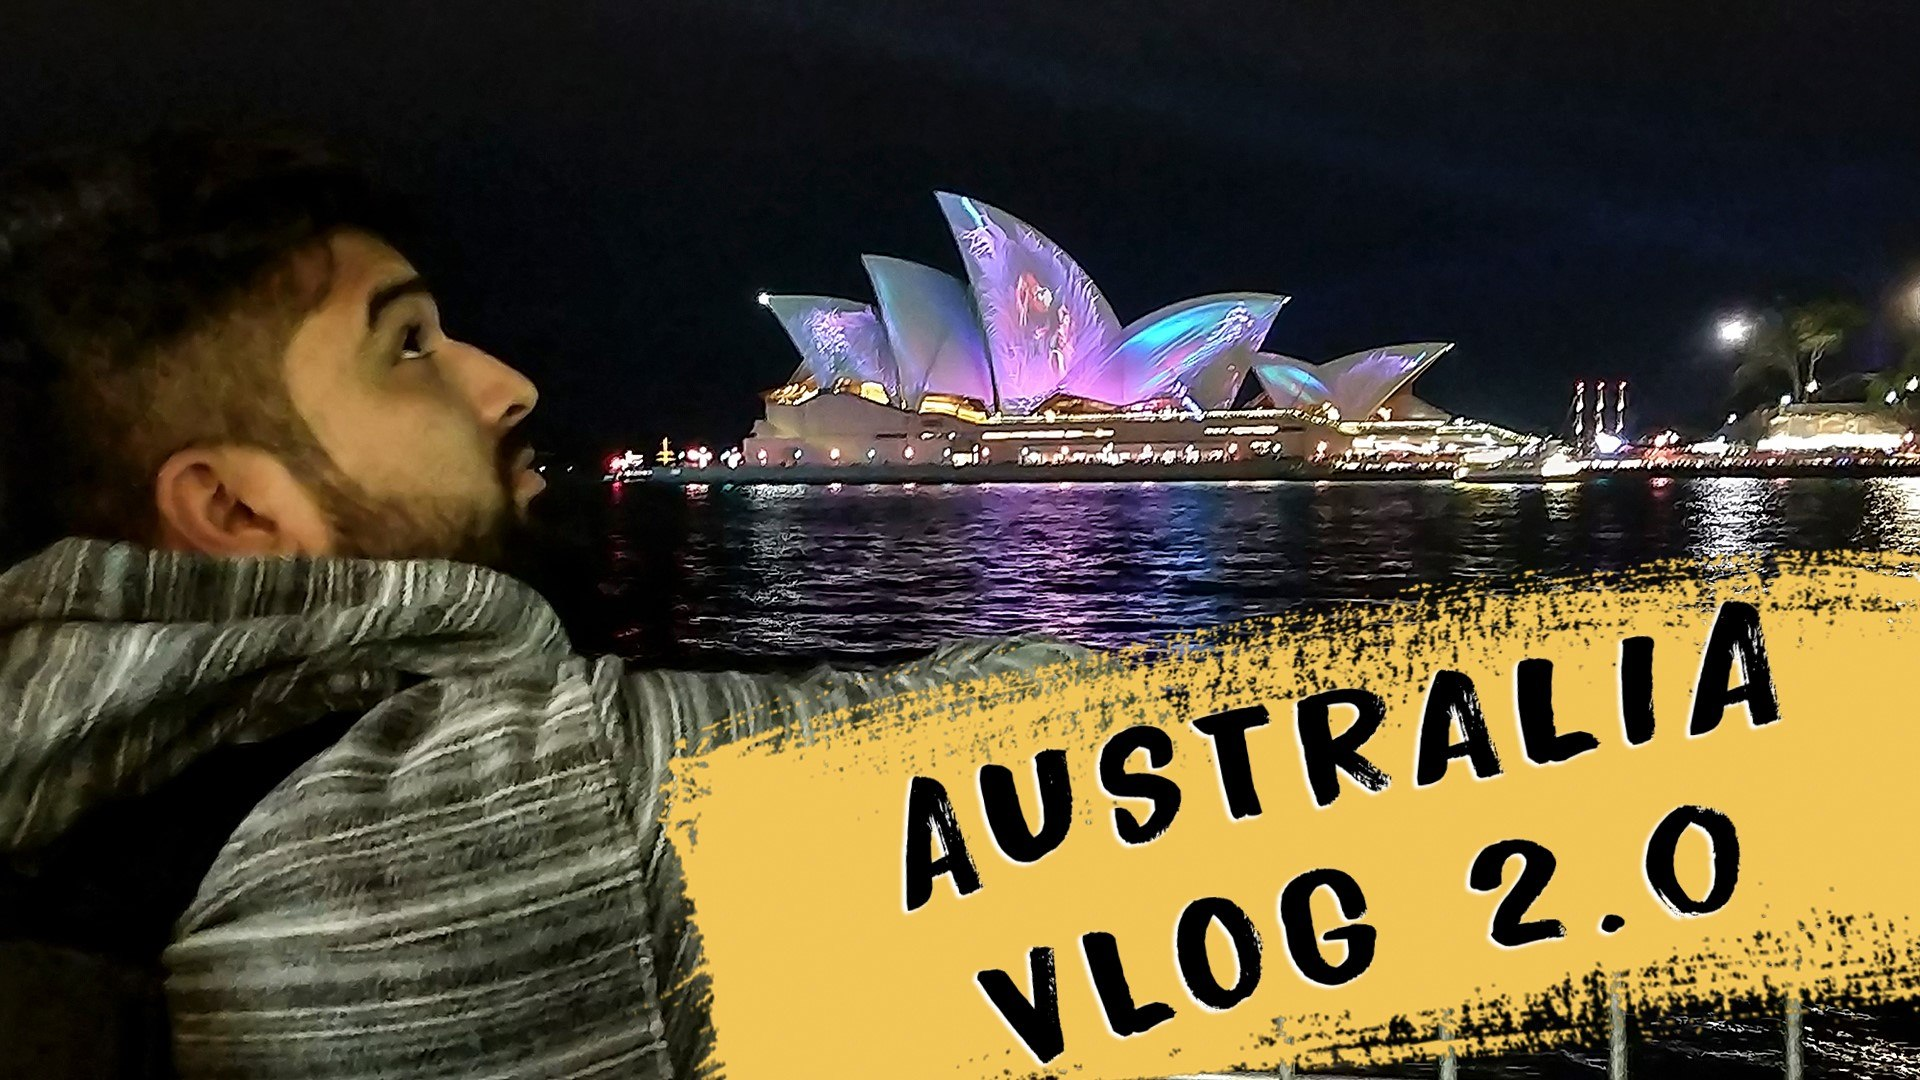 Here's a super fun and engaging insider look into our 2nd Australia tour which happened earlier in June this year.  What more would you like to see in our vlogs? Drop a comment!  UK Tour tickets - https://soccaevents.co.uk/